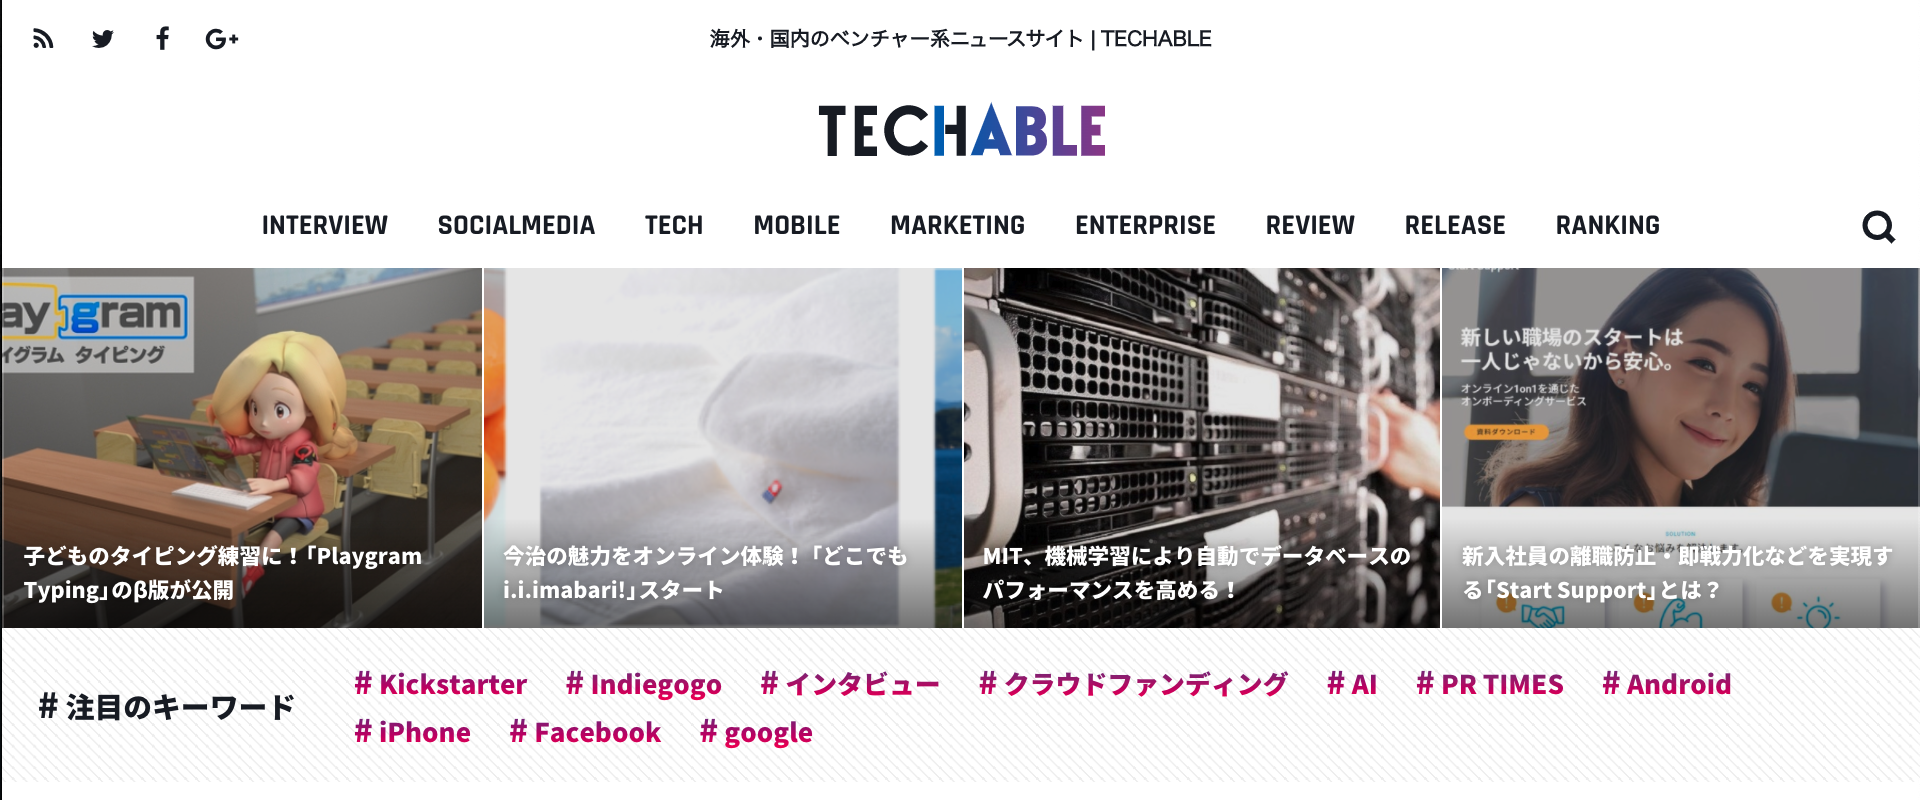 Techable